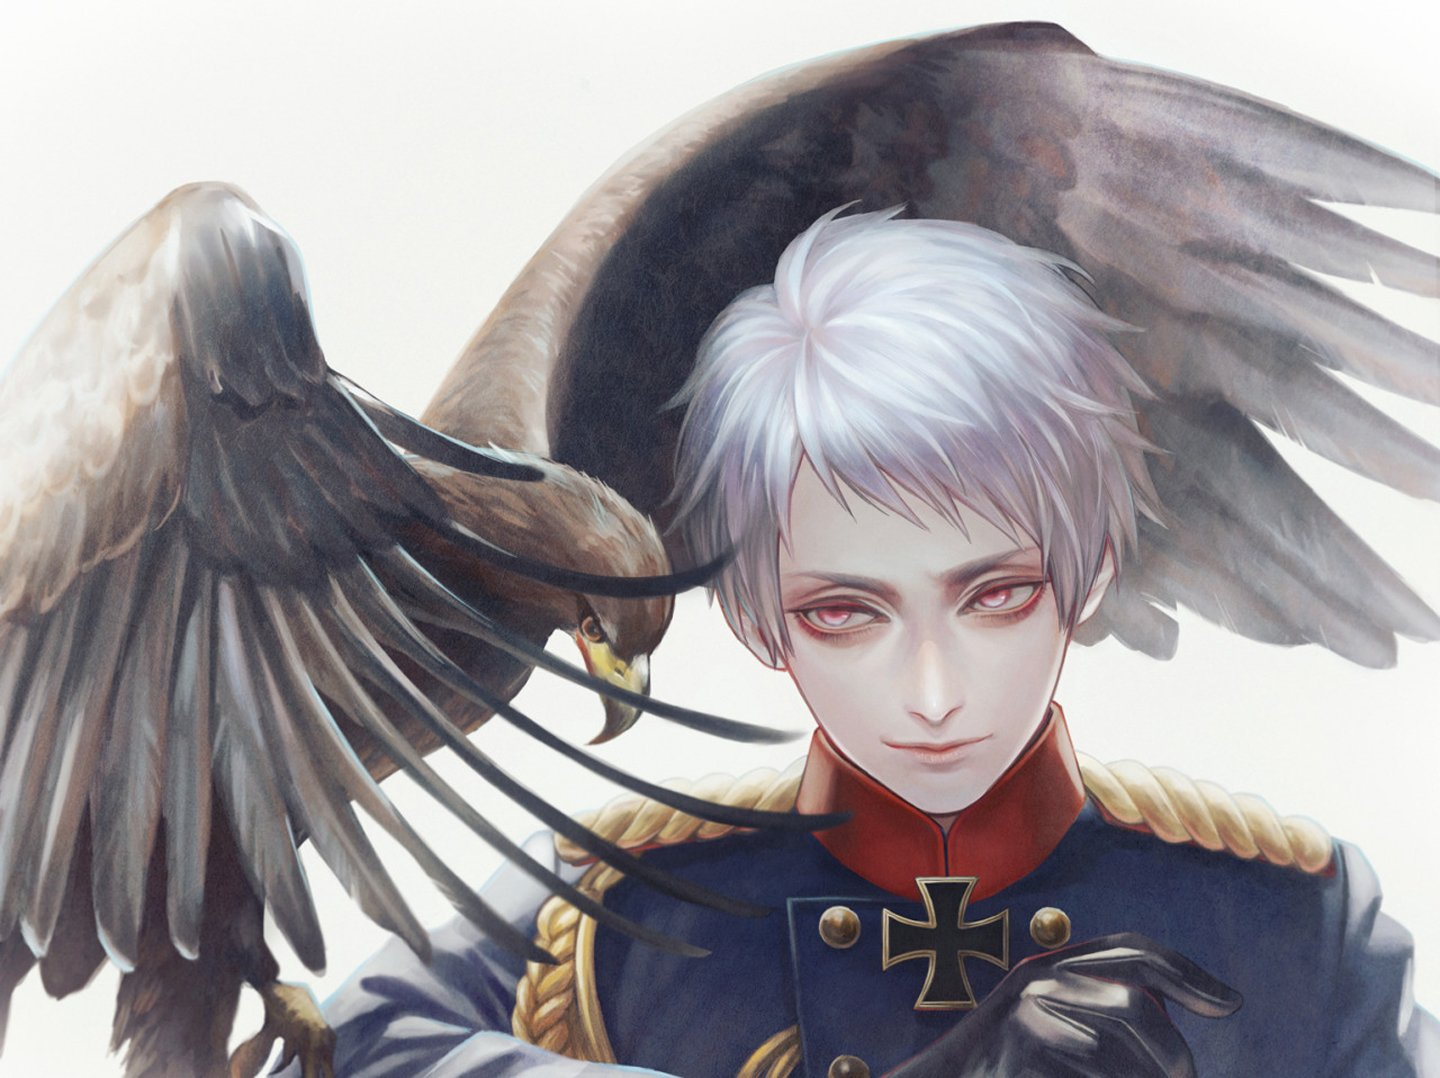 Red Anime Wallpaper Anime Anime Guy Prussia Eagle Bird Animal Red Eyes White